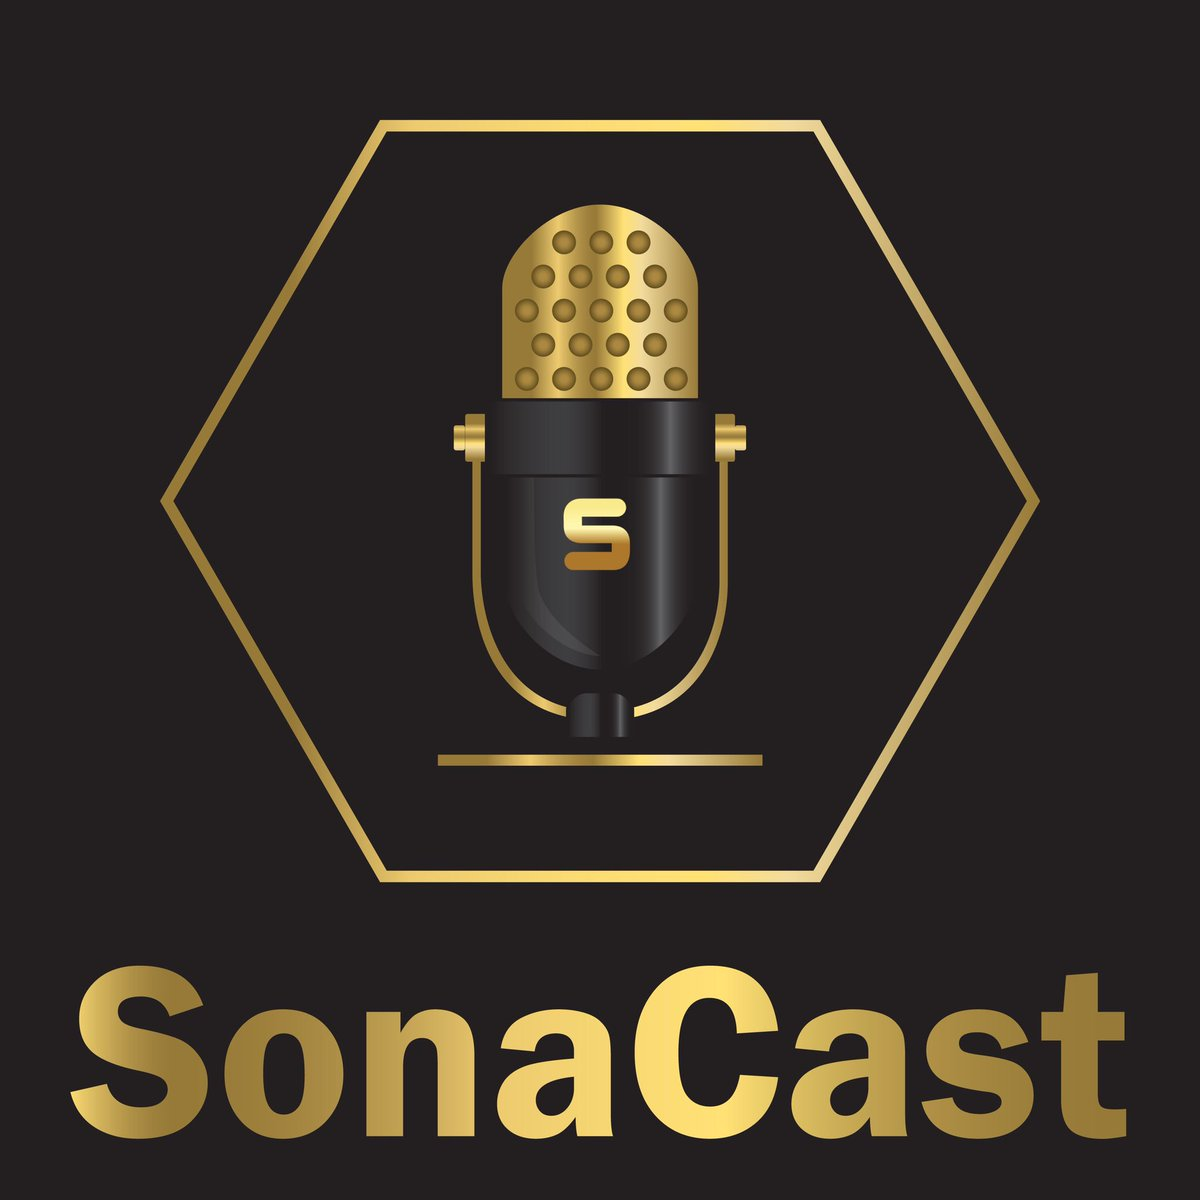 We're excited to announce we will soon be launching our very own #podcast! SonaCast will feature interviews with key figures in #lifesciences, plus analysis and insight from Team Sona. So look out for SonaCast on all good podcast platforms soon! https://t.co/oVVTQhIkGf